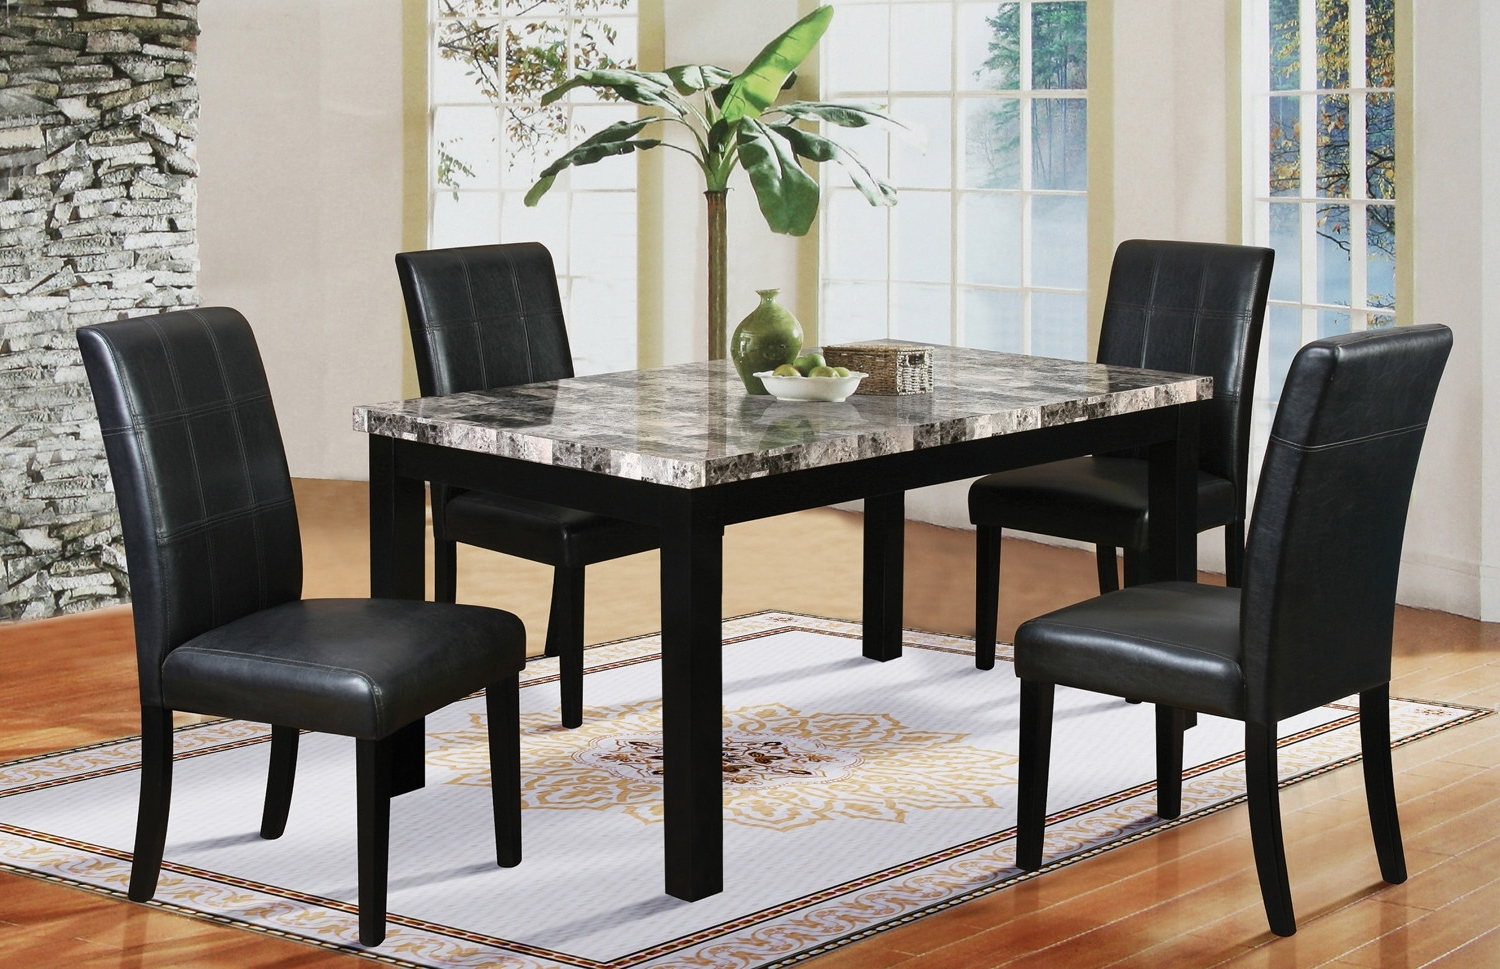 2017 Cora 5 Piece Dining Sets Pertaining To Latitude Run Cahill 5 Piece Dining Set (View 3 of 25)